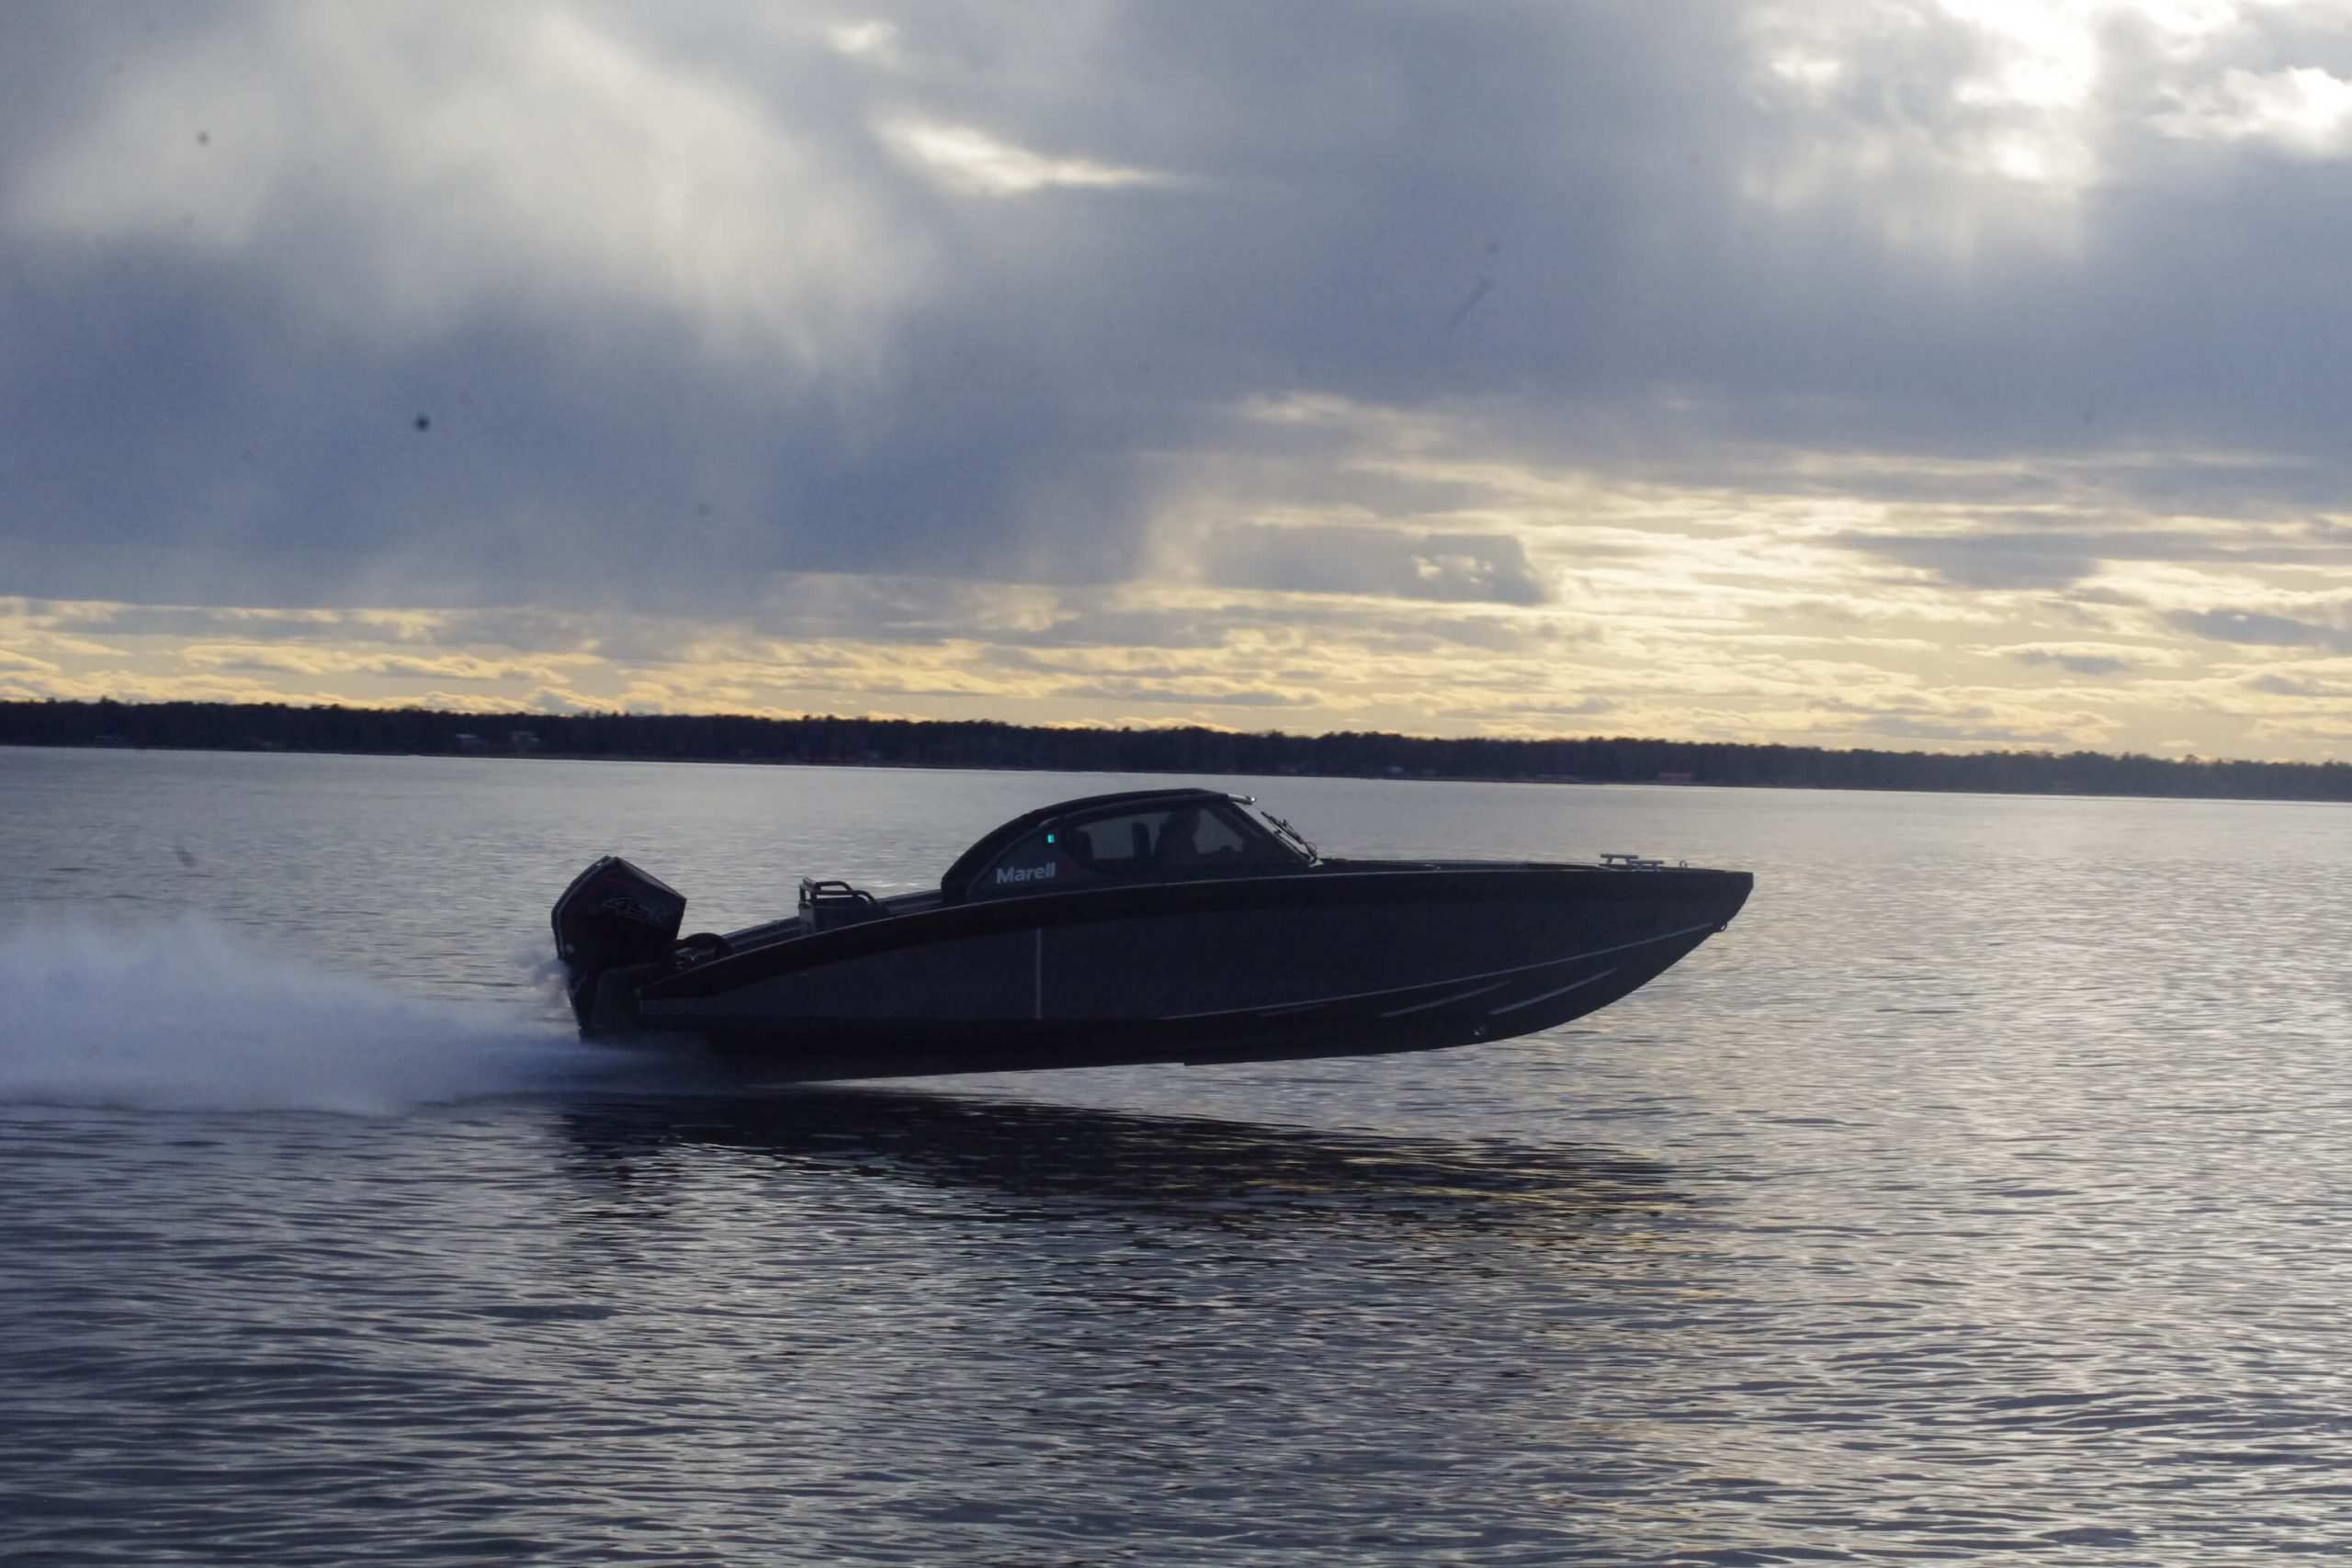 m9 boat at high speed